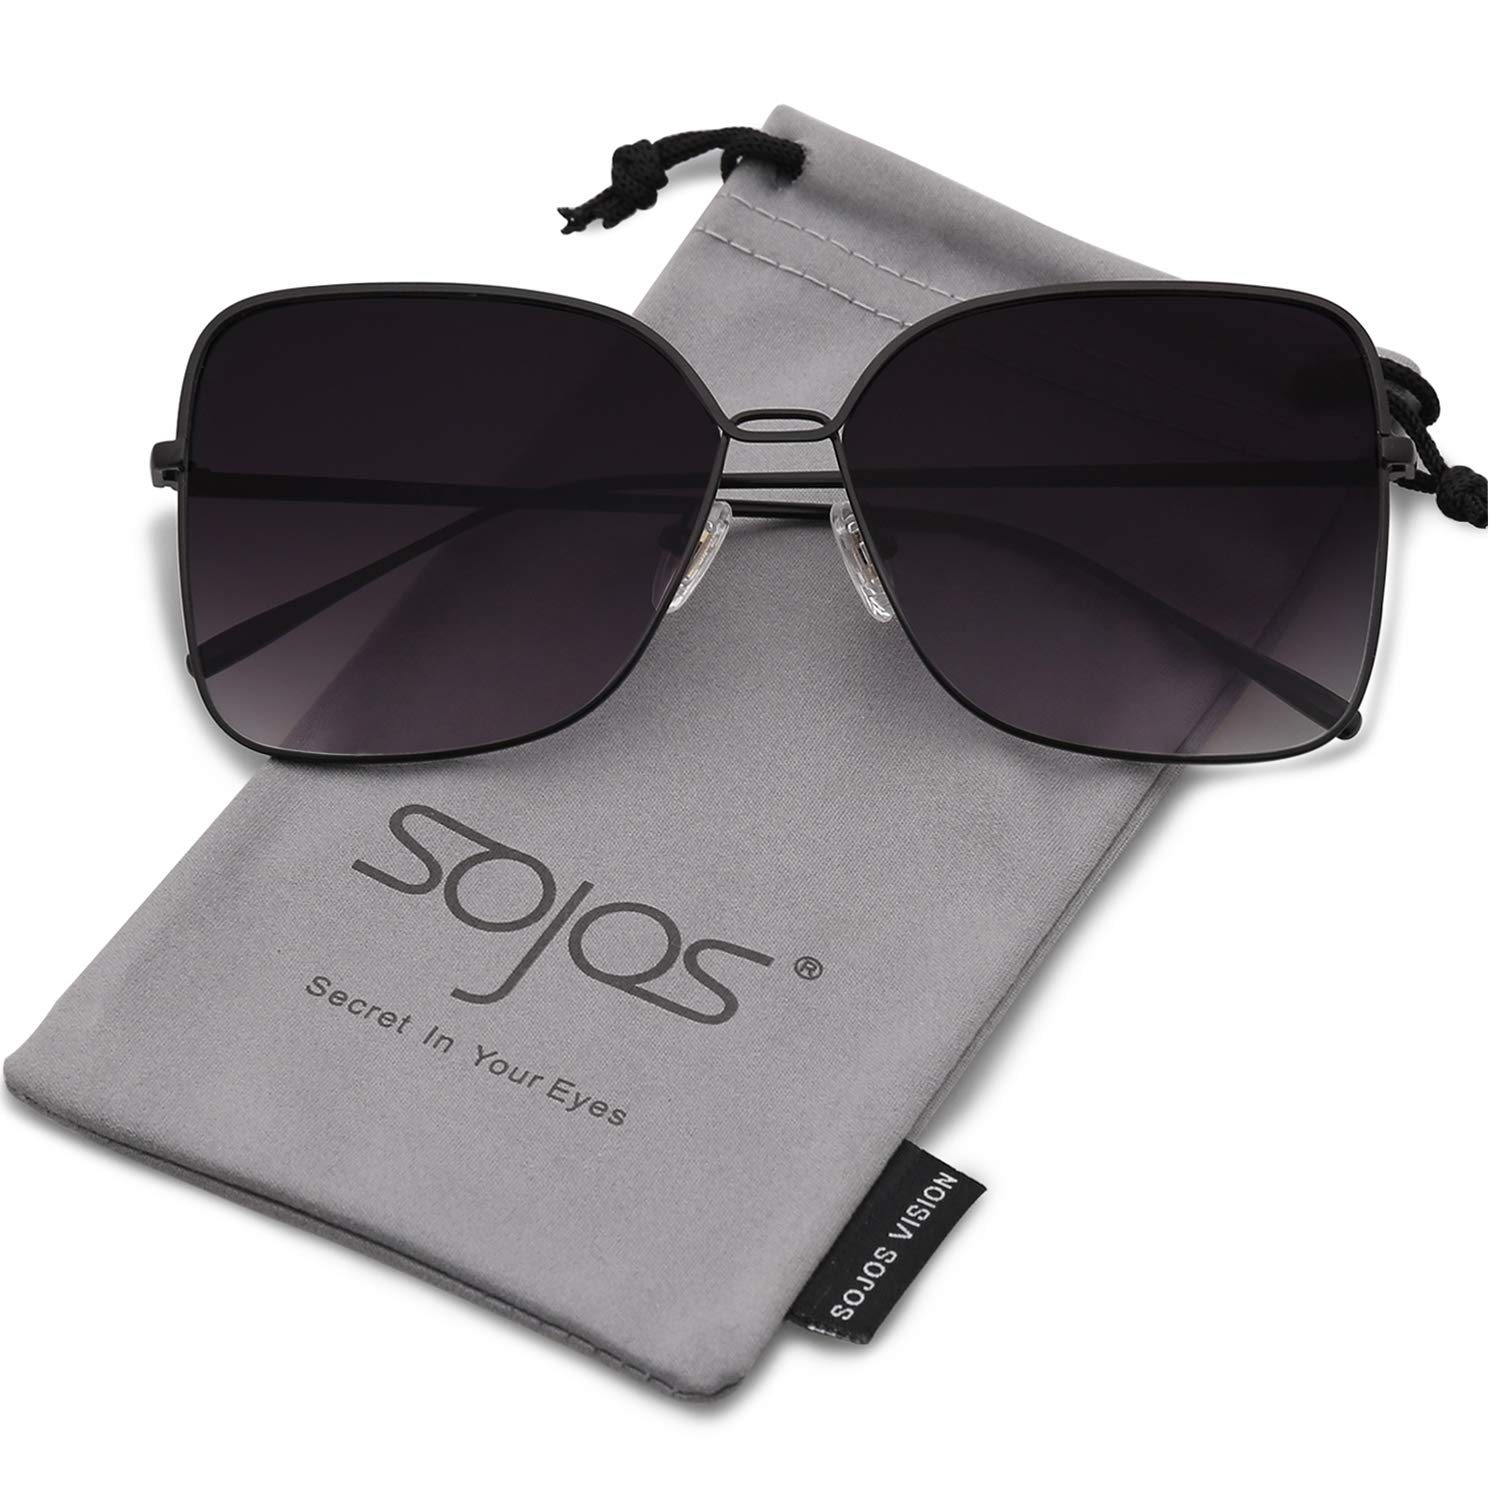 SOJOS Fashion Oversized Square Sunglasses for Women Flat Mirrored Lens SJ1082 with Black Frame/Gradient Grey Lens